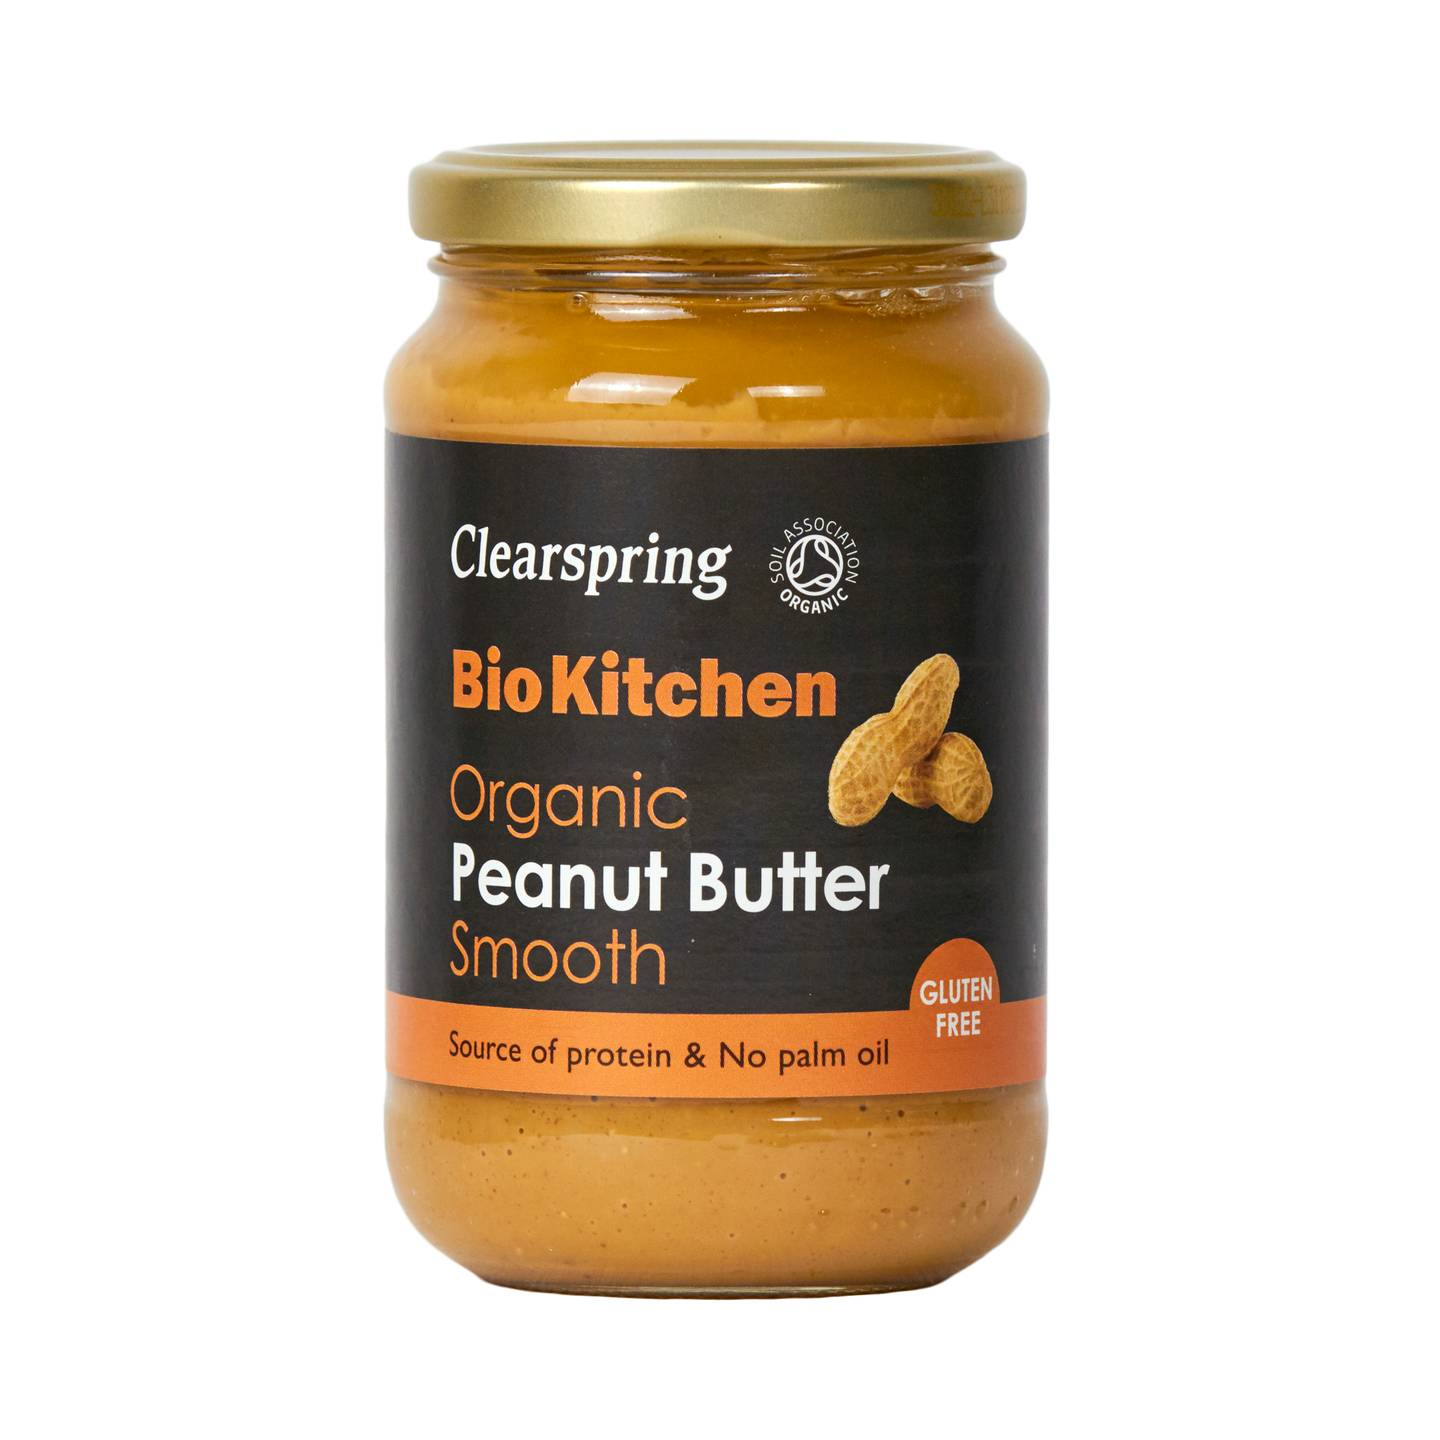 Clearspring - Peanut Butter - Smooth